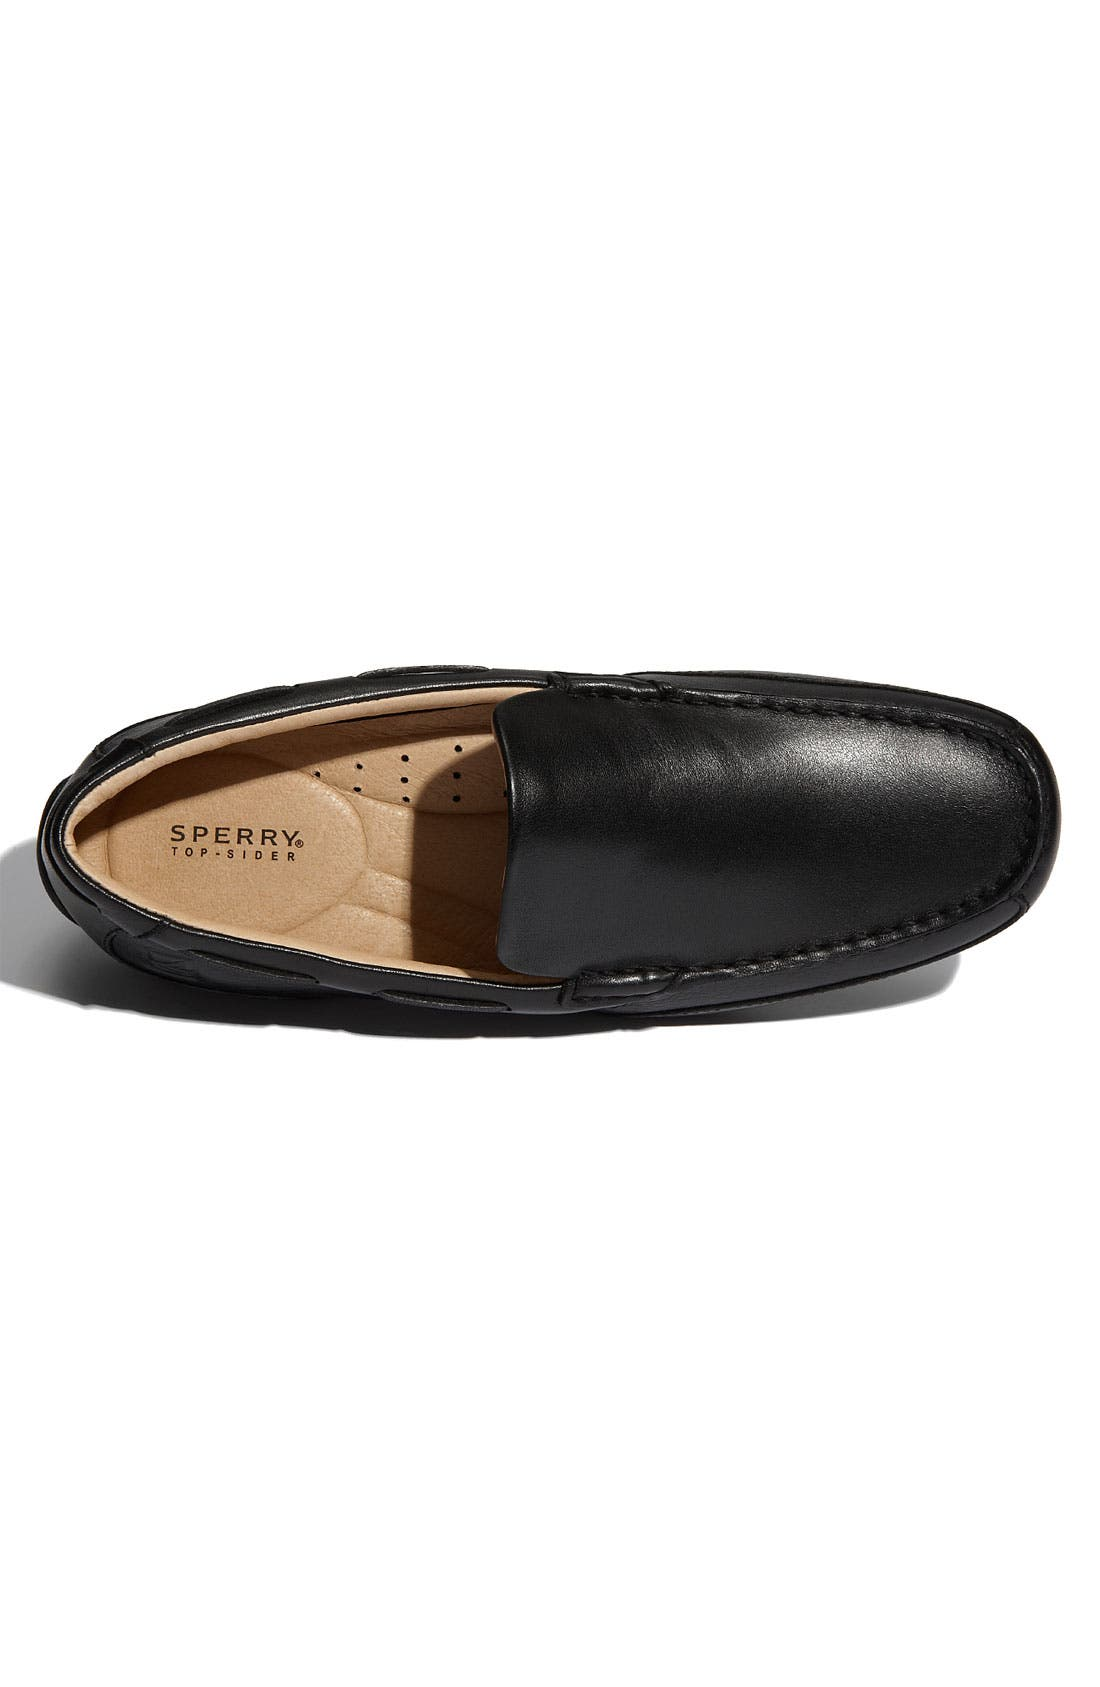 Alternate Image 3  - Sperry Top-Sider® 'Navigator Venetian' Driving Shoe